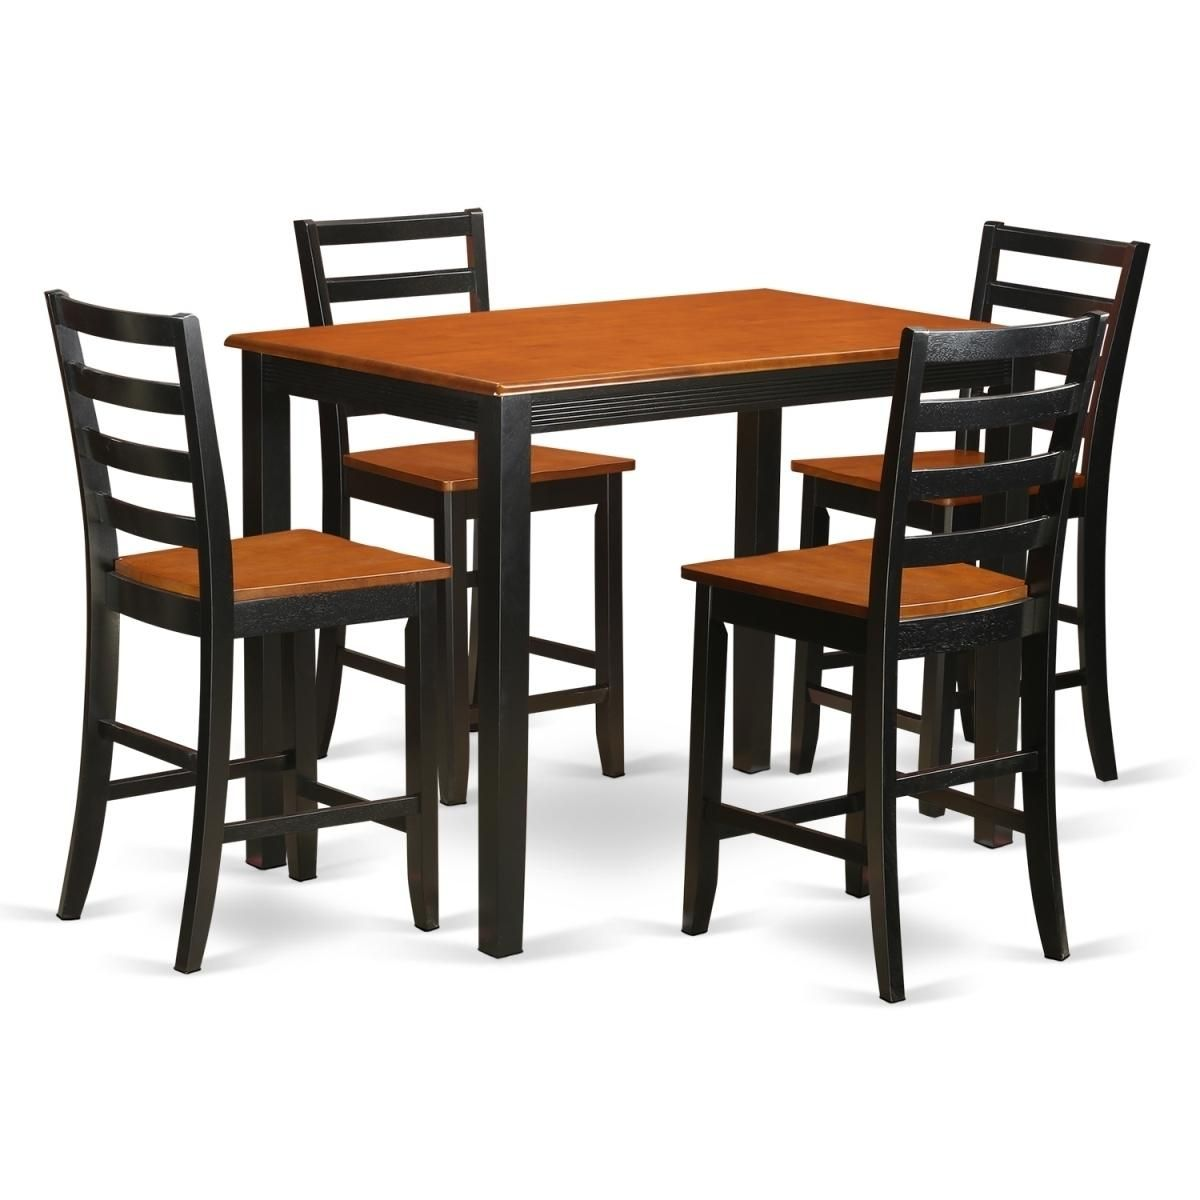 Counter Height Pub Small Kitchen Table & 4 Bar Stool, Black Finish